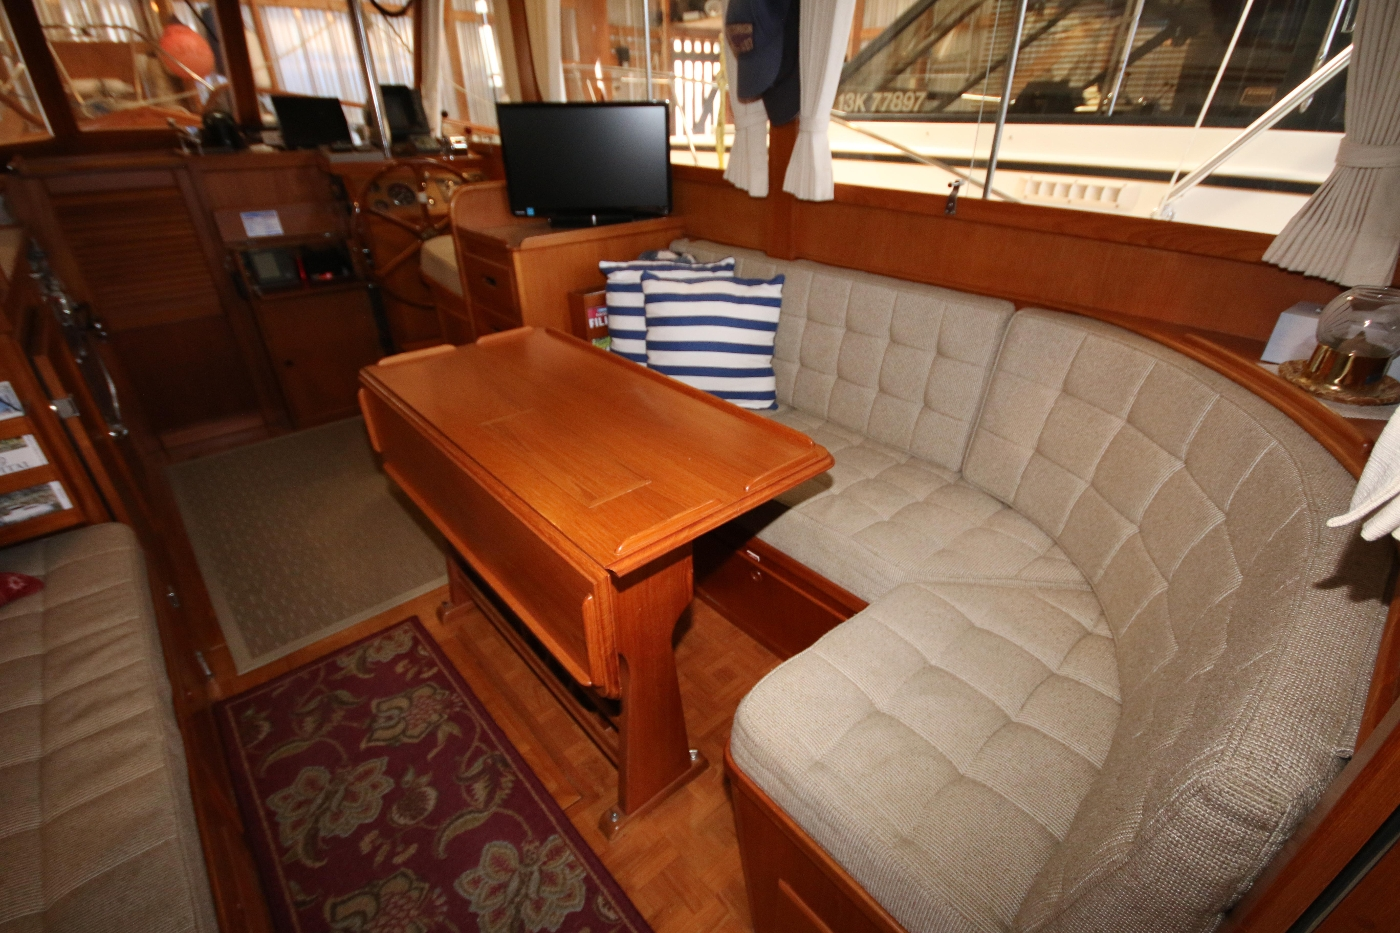 1988 Grand Banks 32, Starboard Settee and Folding Table